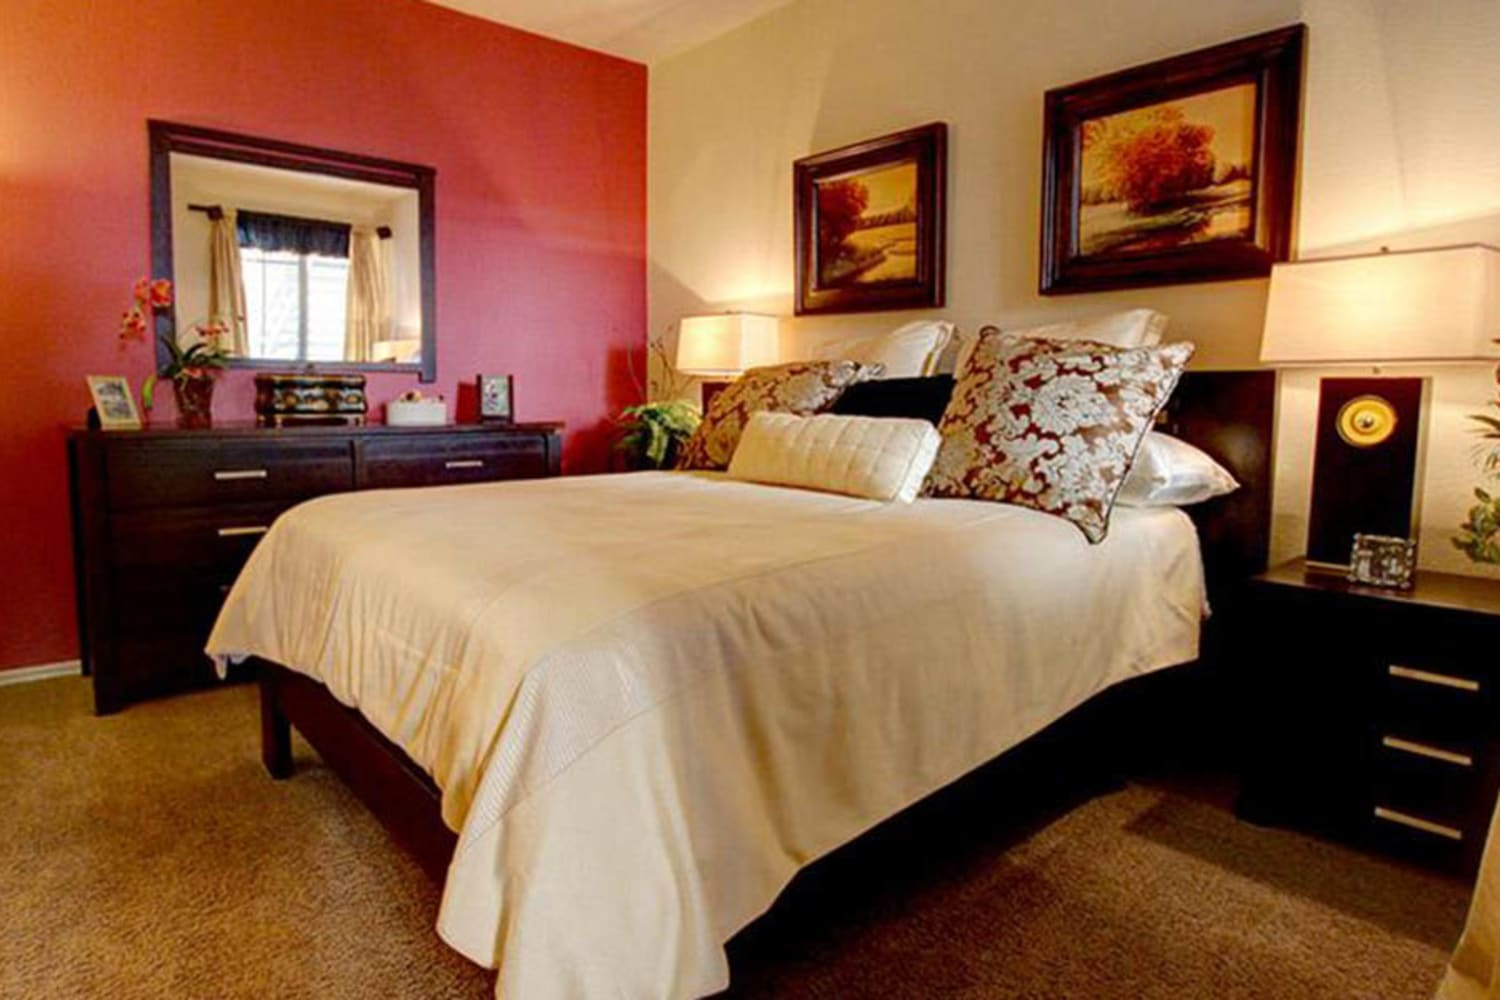 Enjoy spacious bedrooms at Dobson 2222 in Chandler, Arizona